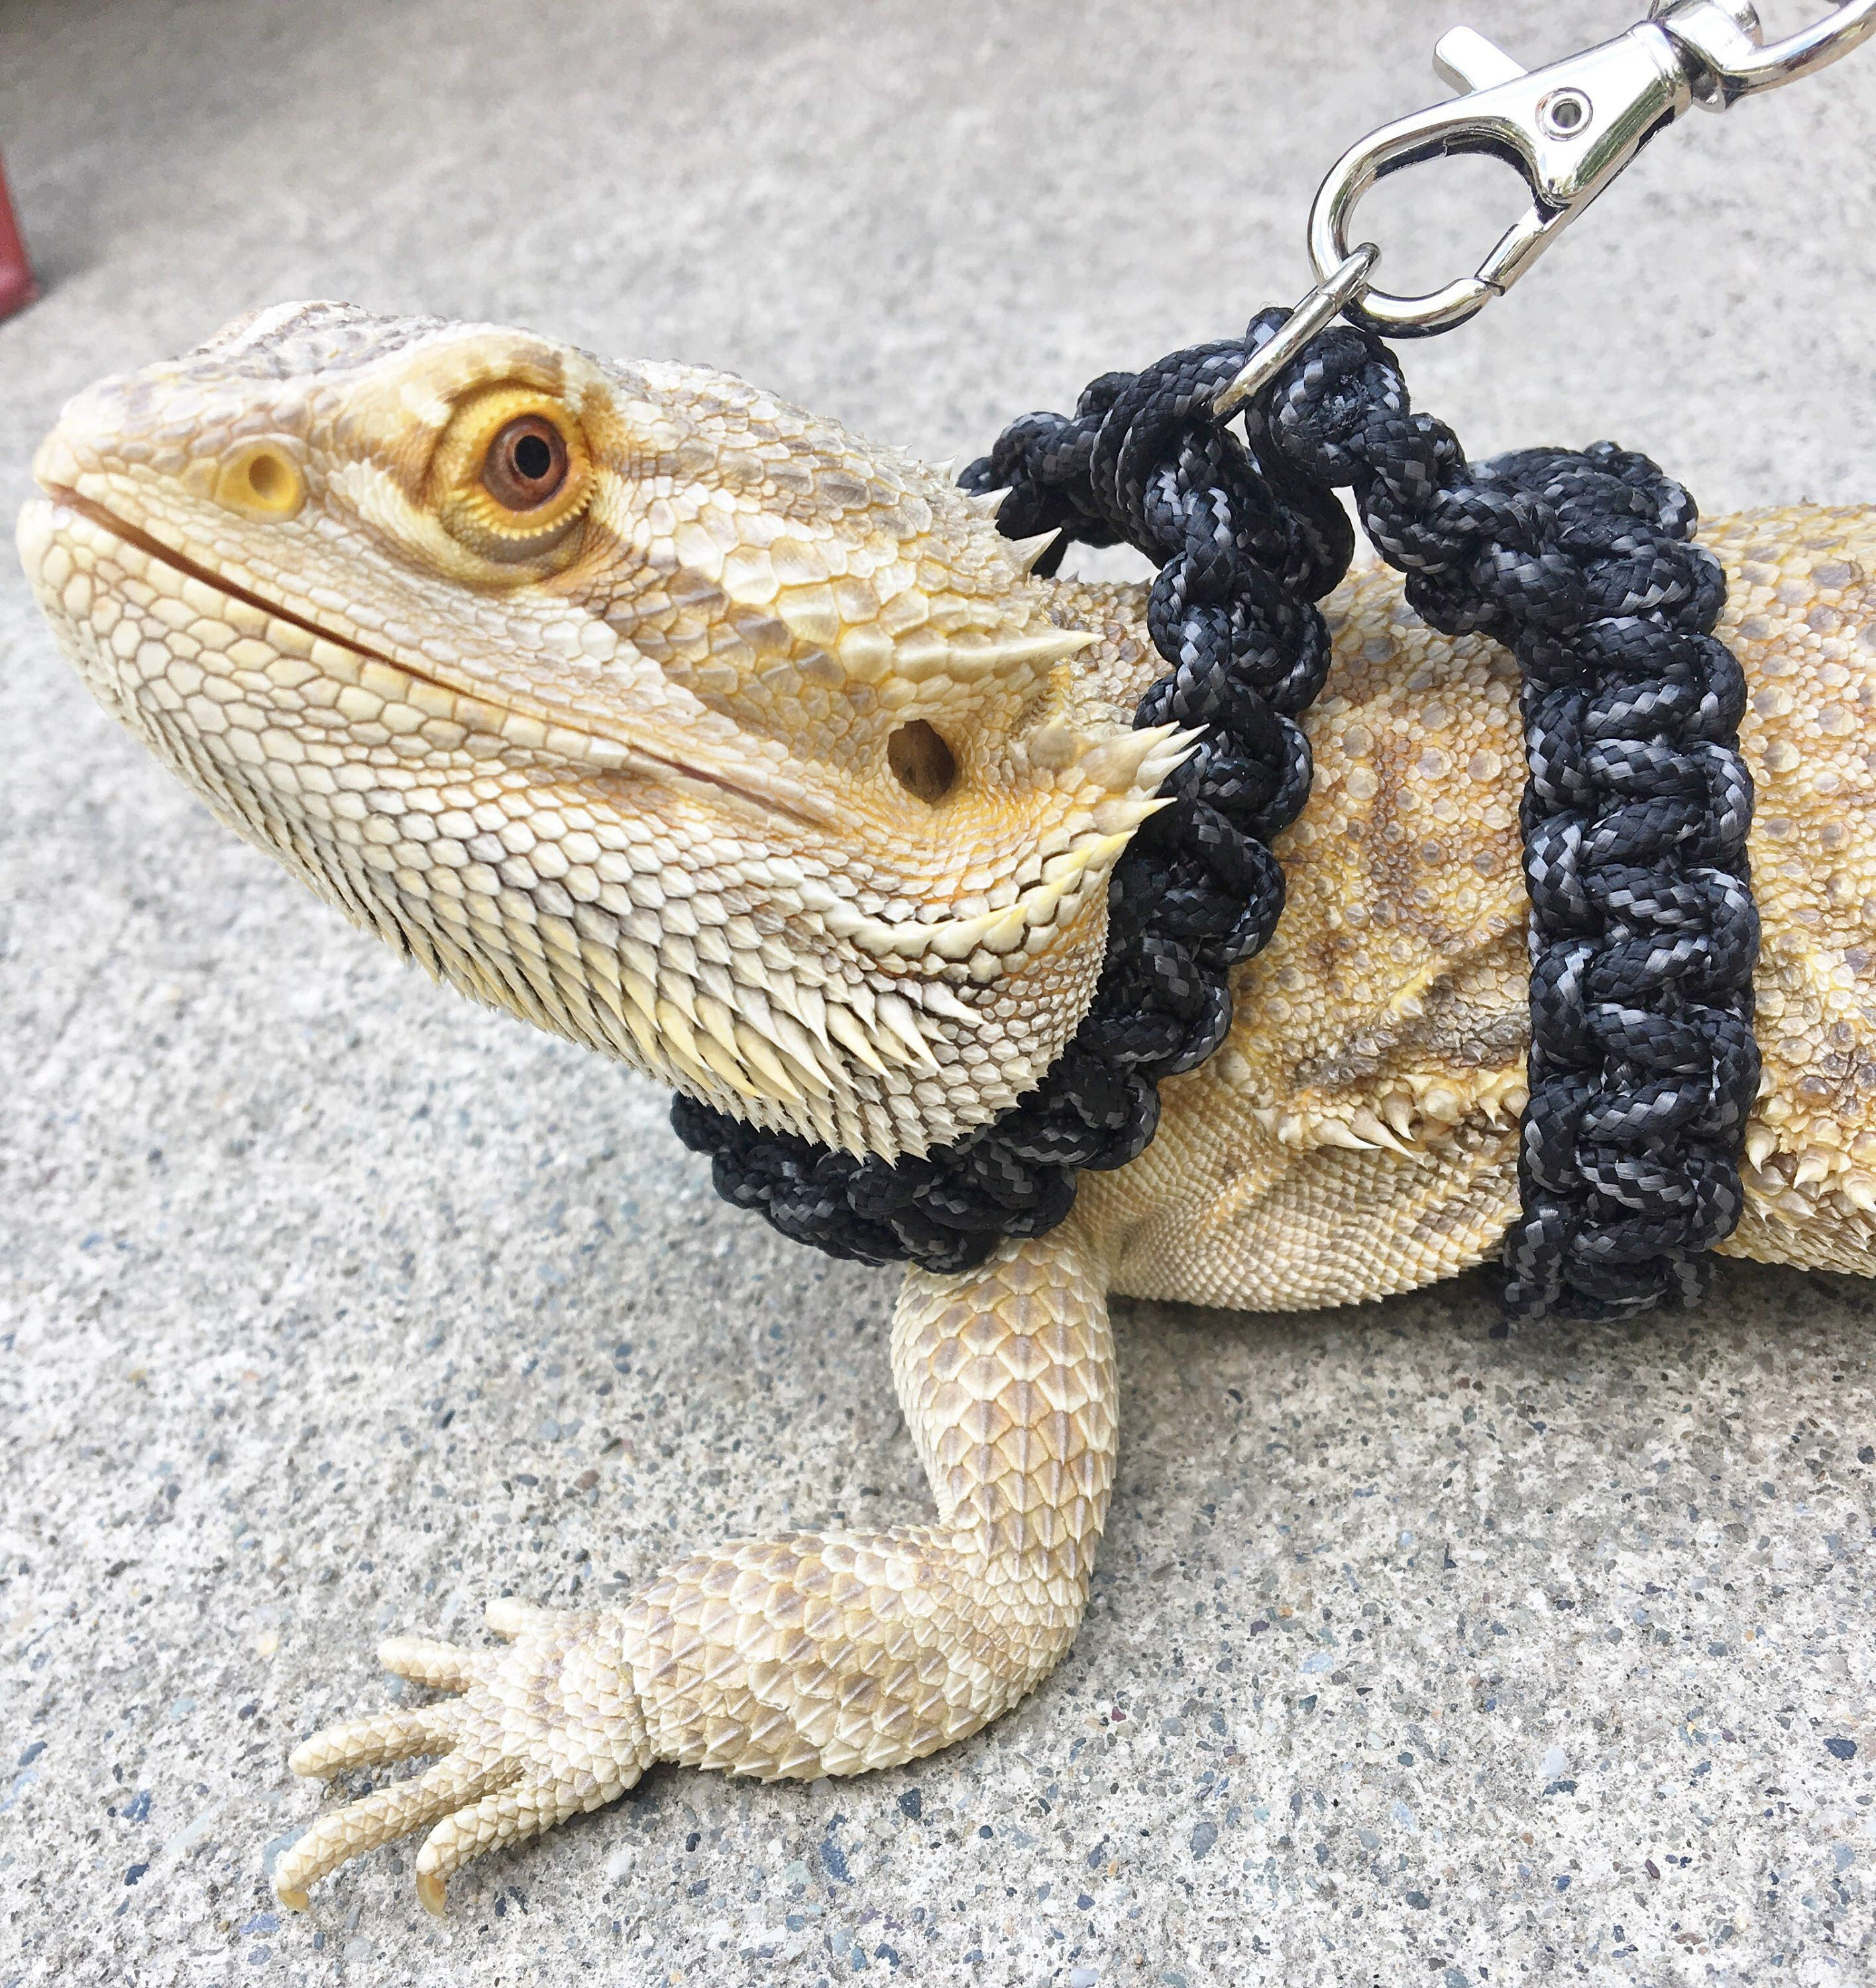 Reptile Harness Bearded Dragon Para Cord Harness Collar And Etsy In 2020 Bearded Dragon Care Baby Bearded Dragon Bearded Dragon